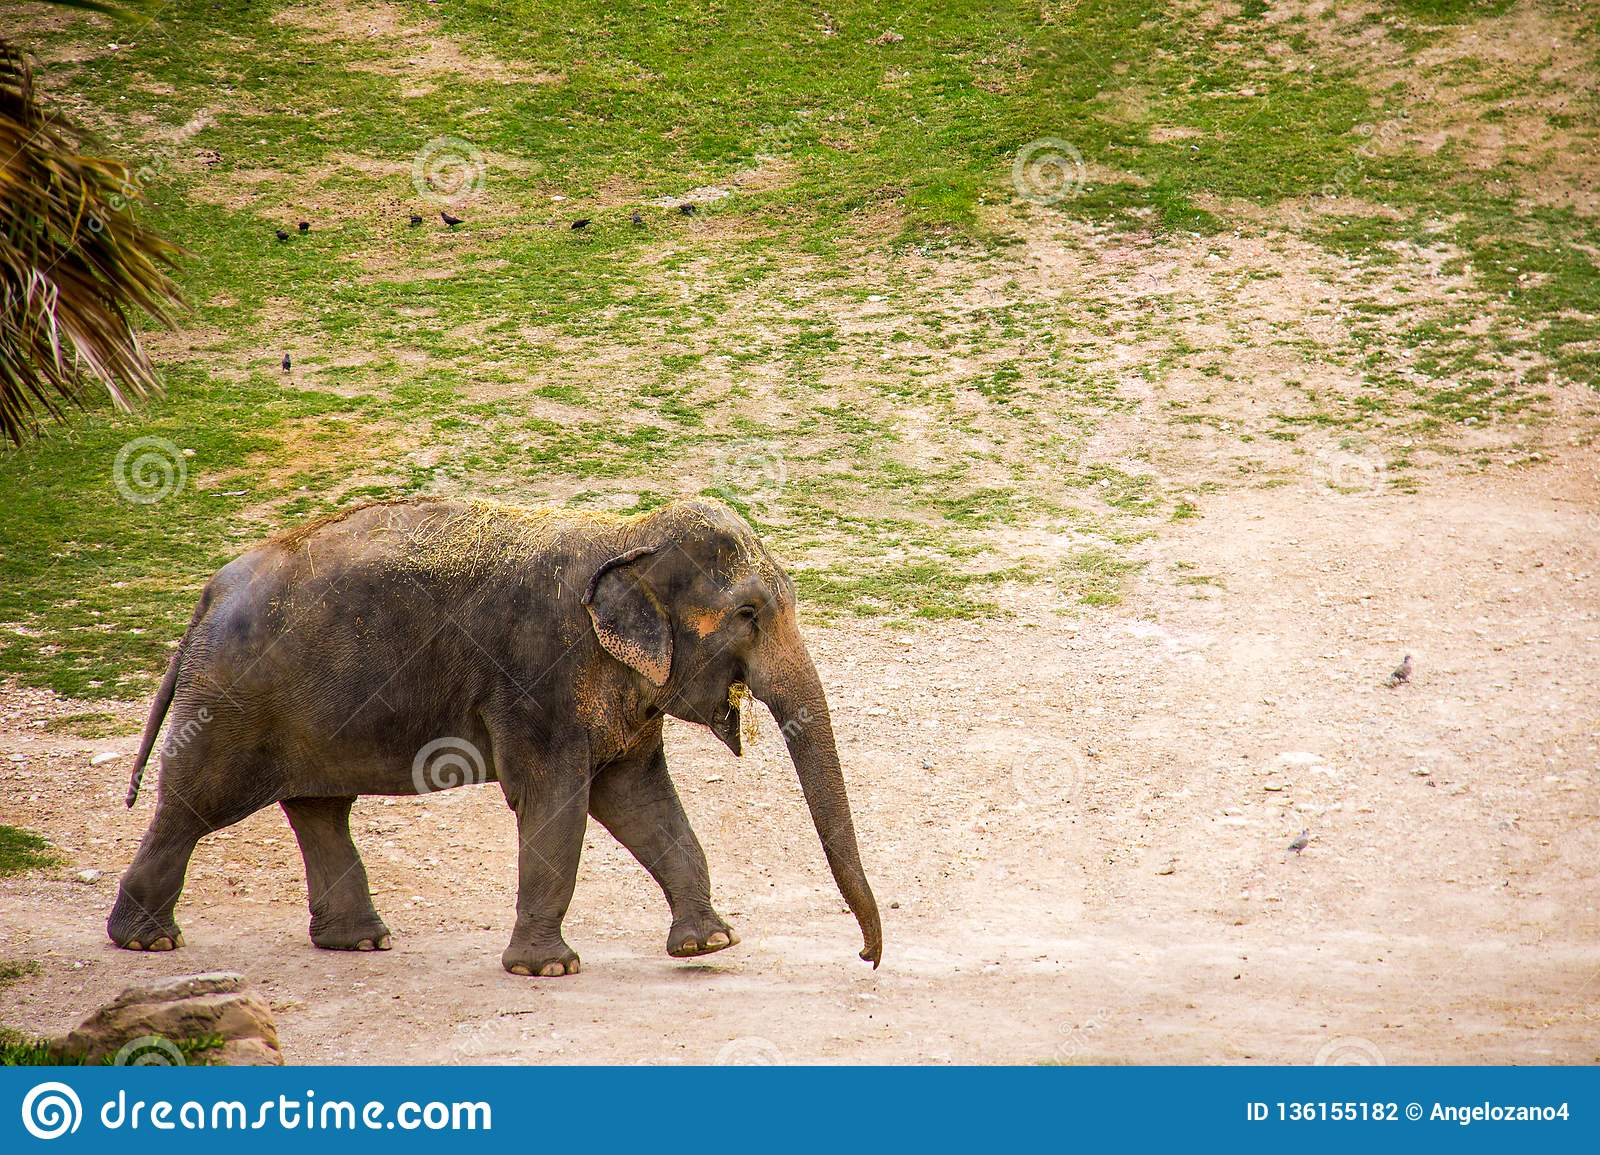 Elephant grazing and eating grass